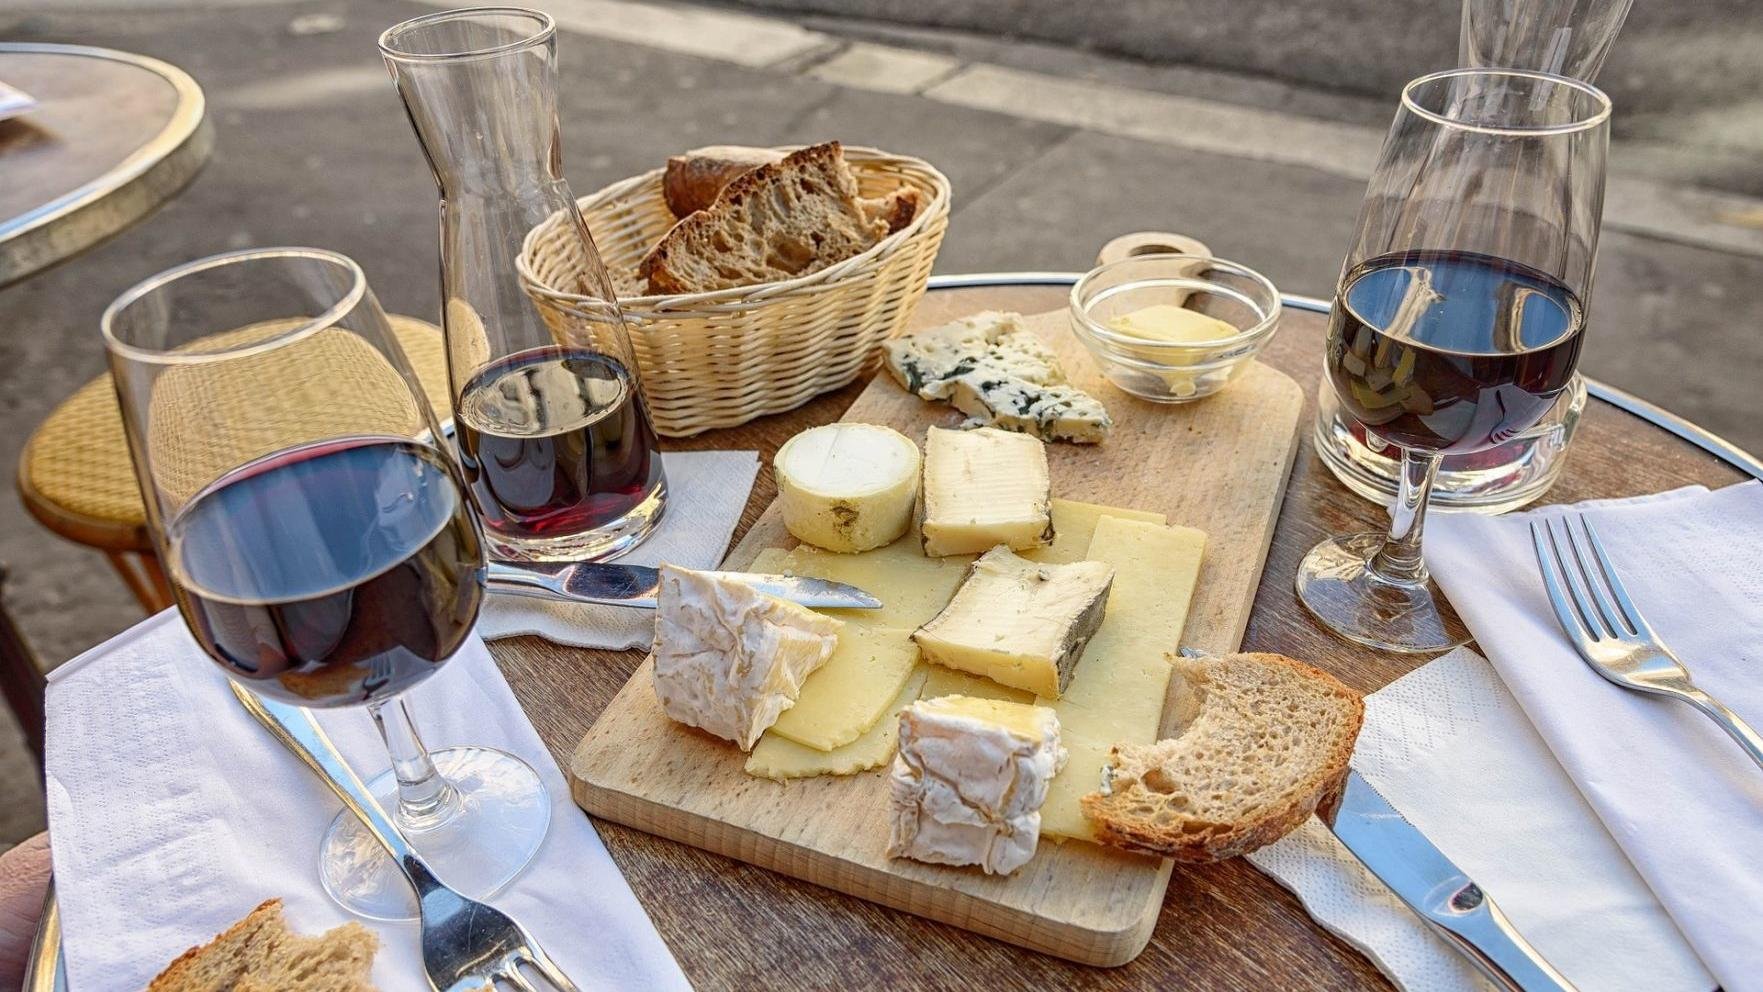 Perfect pairings: Instantly match your favorite wine with the best cheese